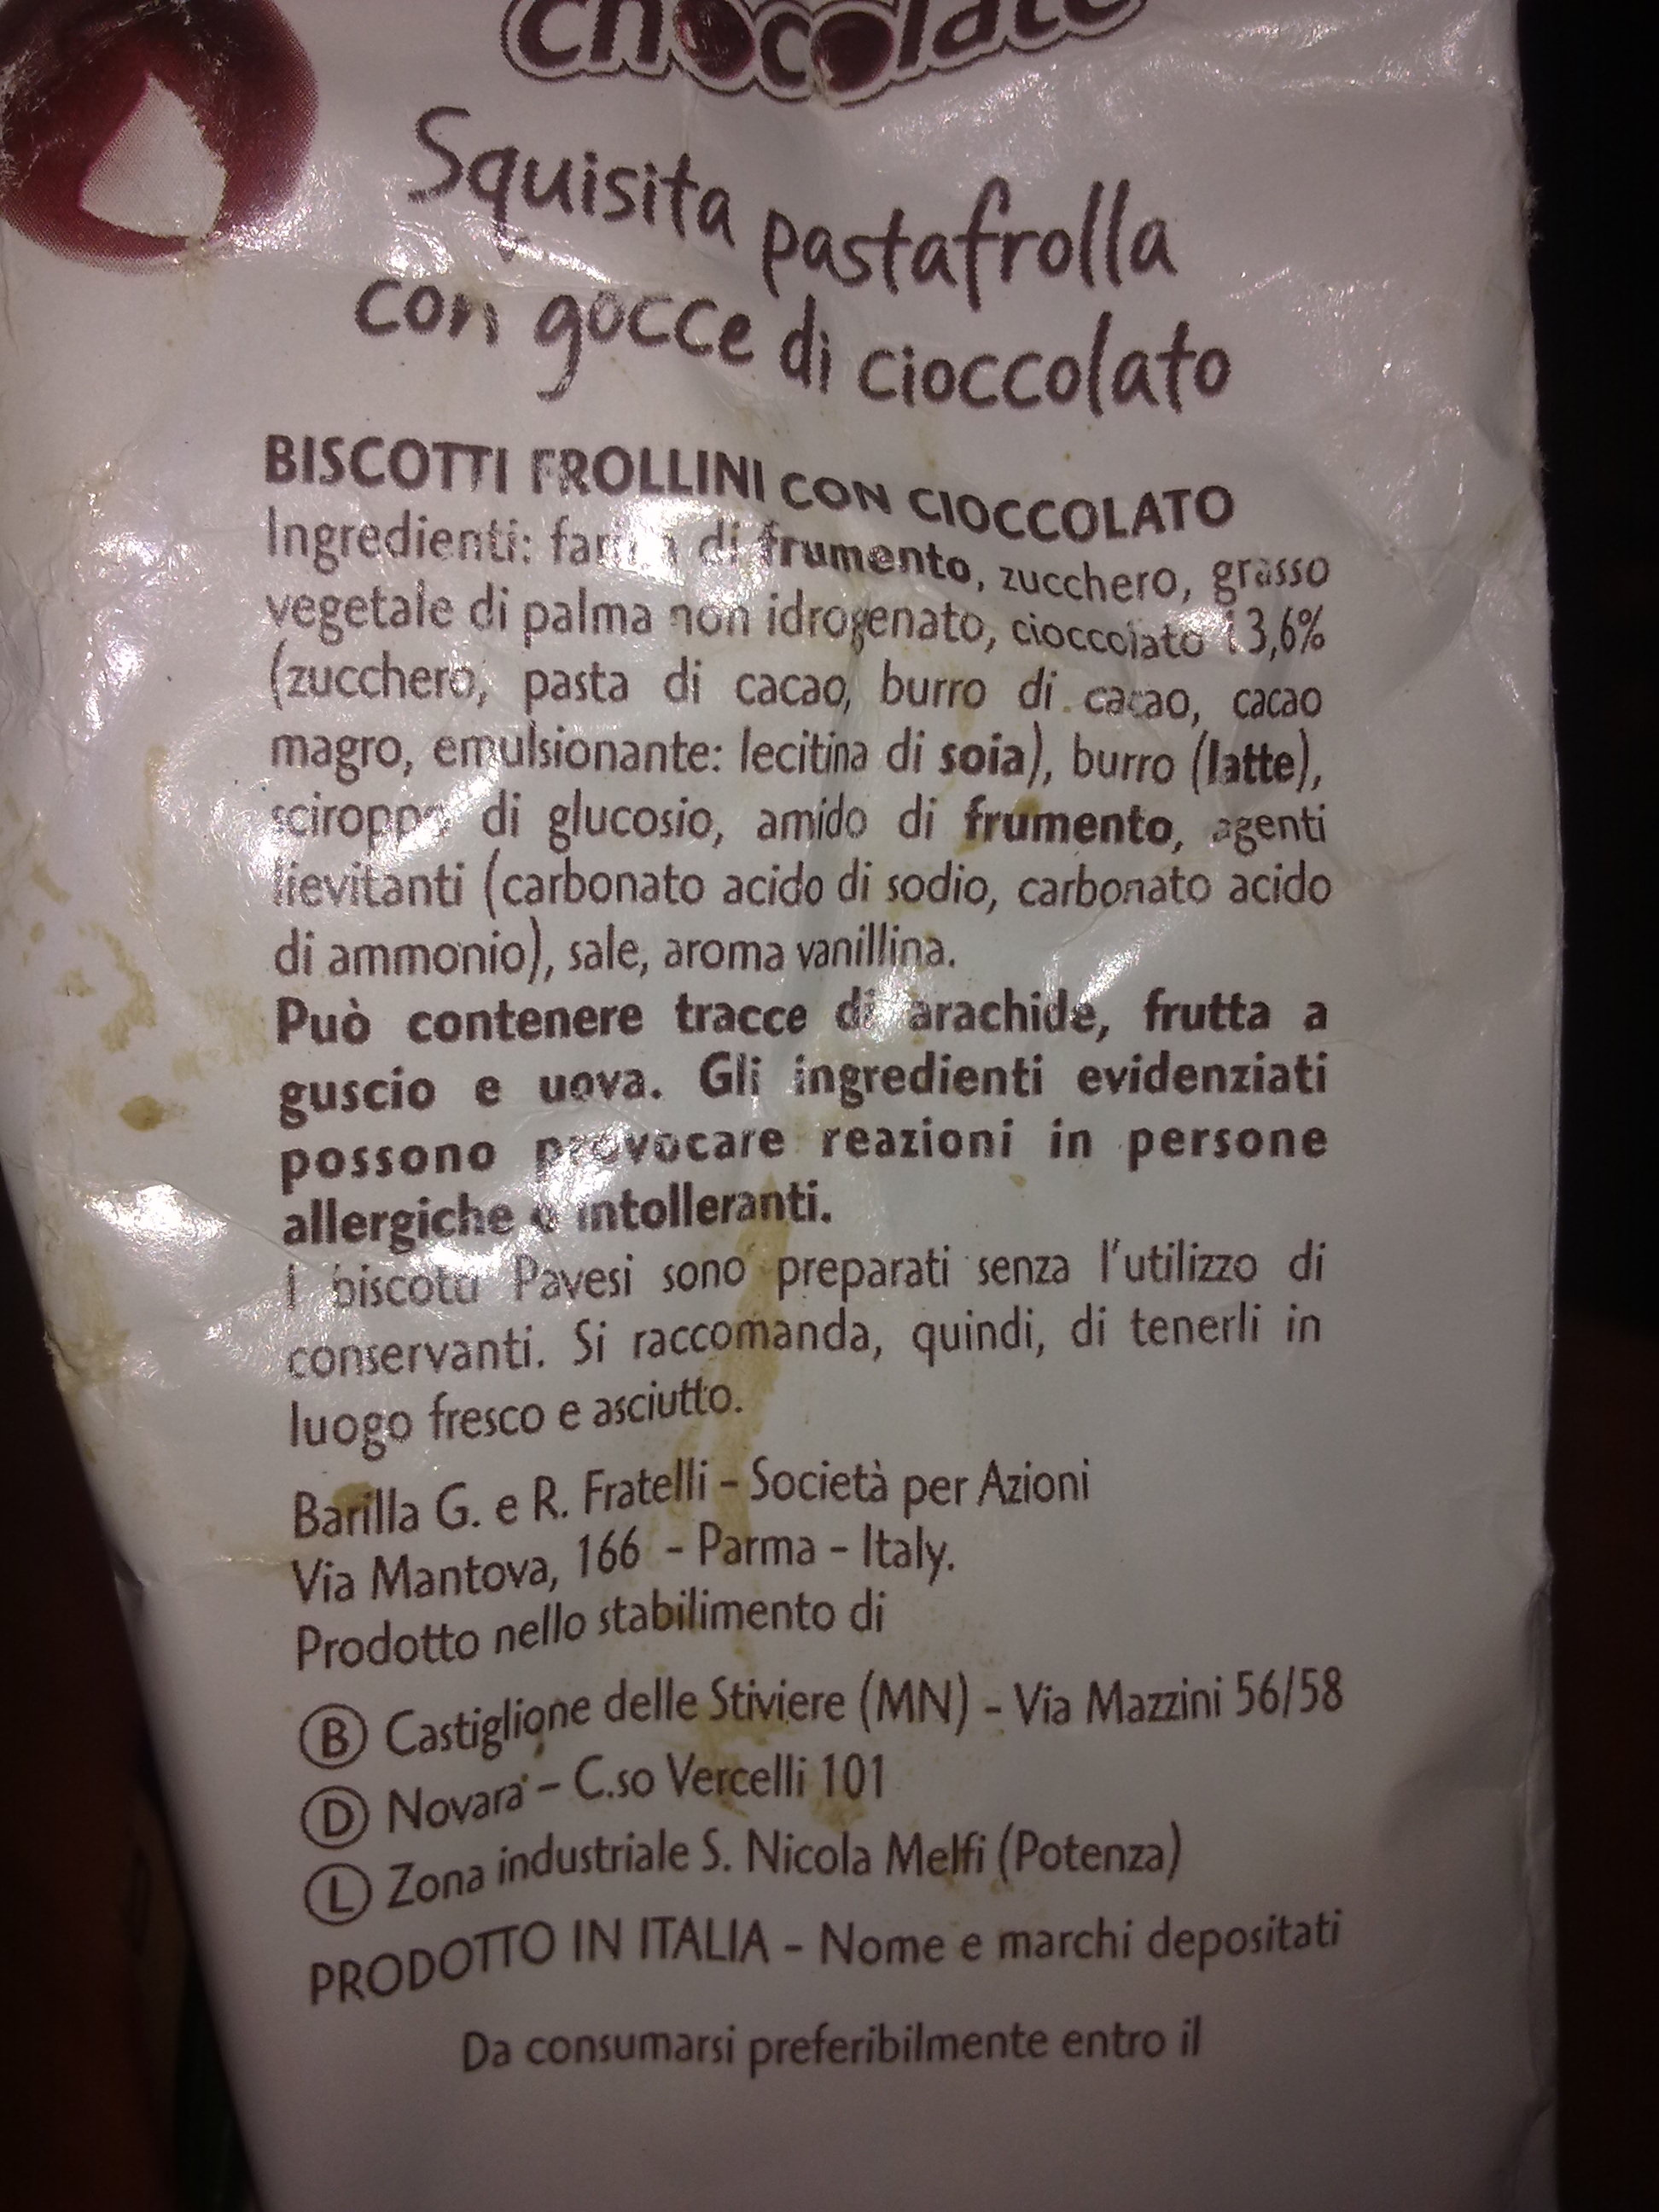 Gocciole chocolate Pavesi - Ingredienti